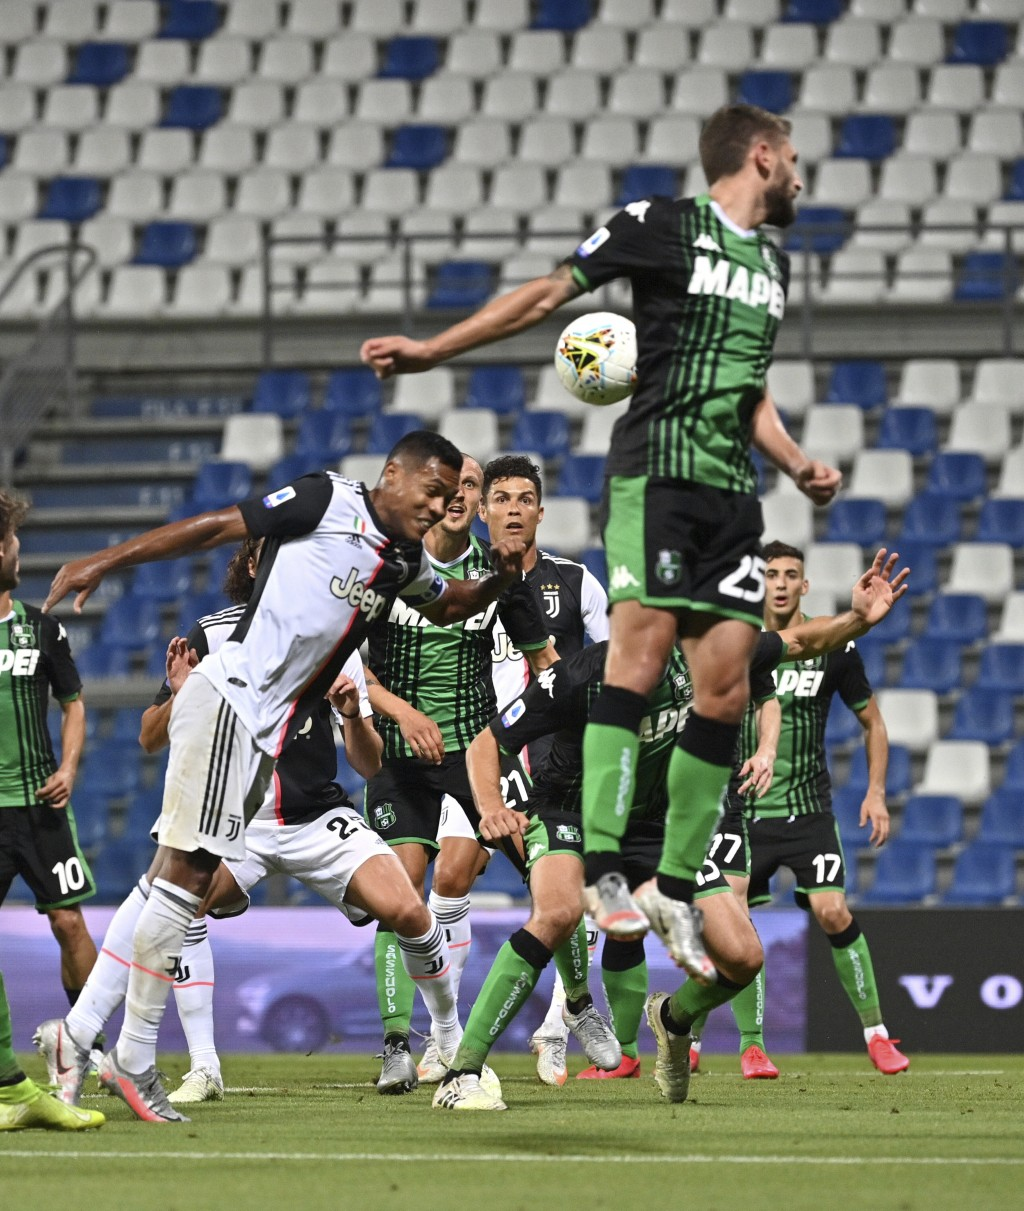 Juventus' Alex Sandro, left, scores a goal during a Serie A soccer match between Sassuolo and Juventus at the Mapei Stadium in Reggio Emilia, Italy, W...